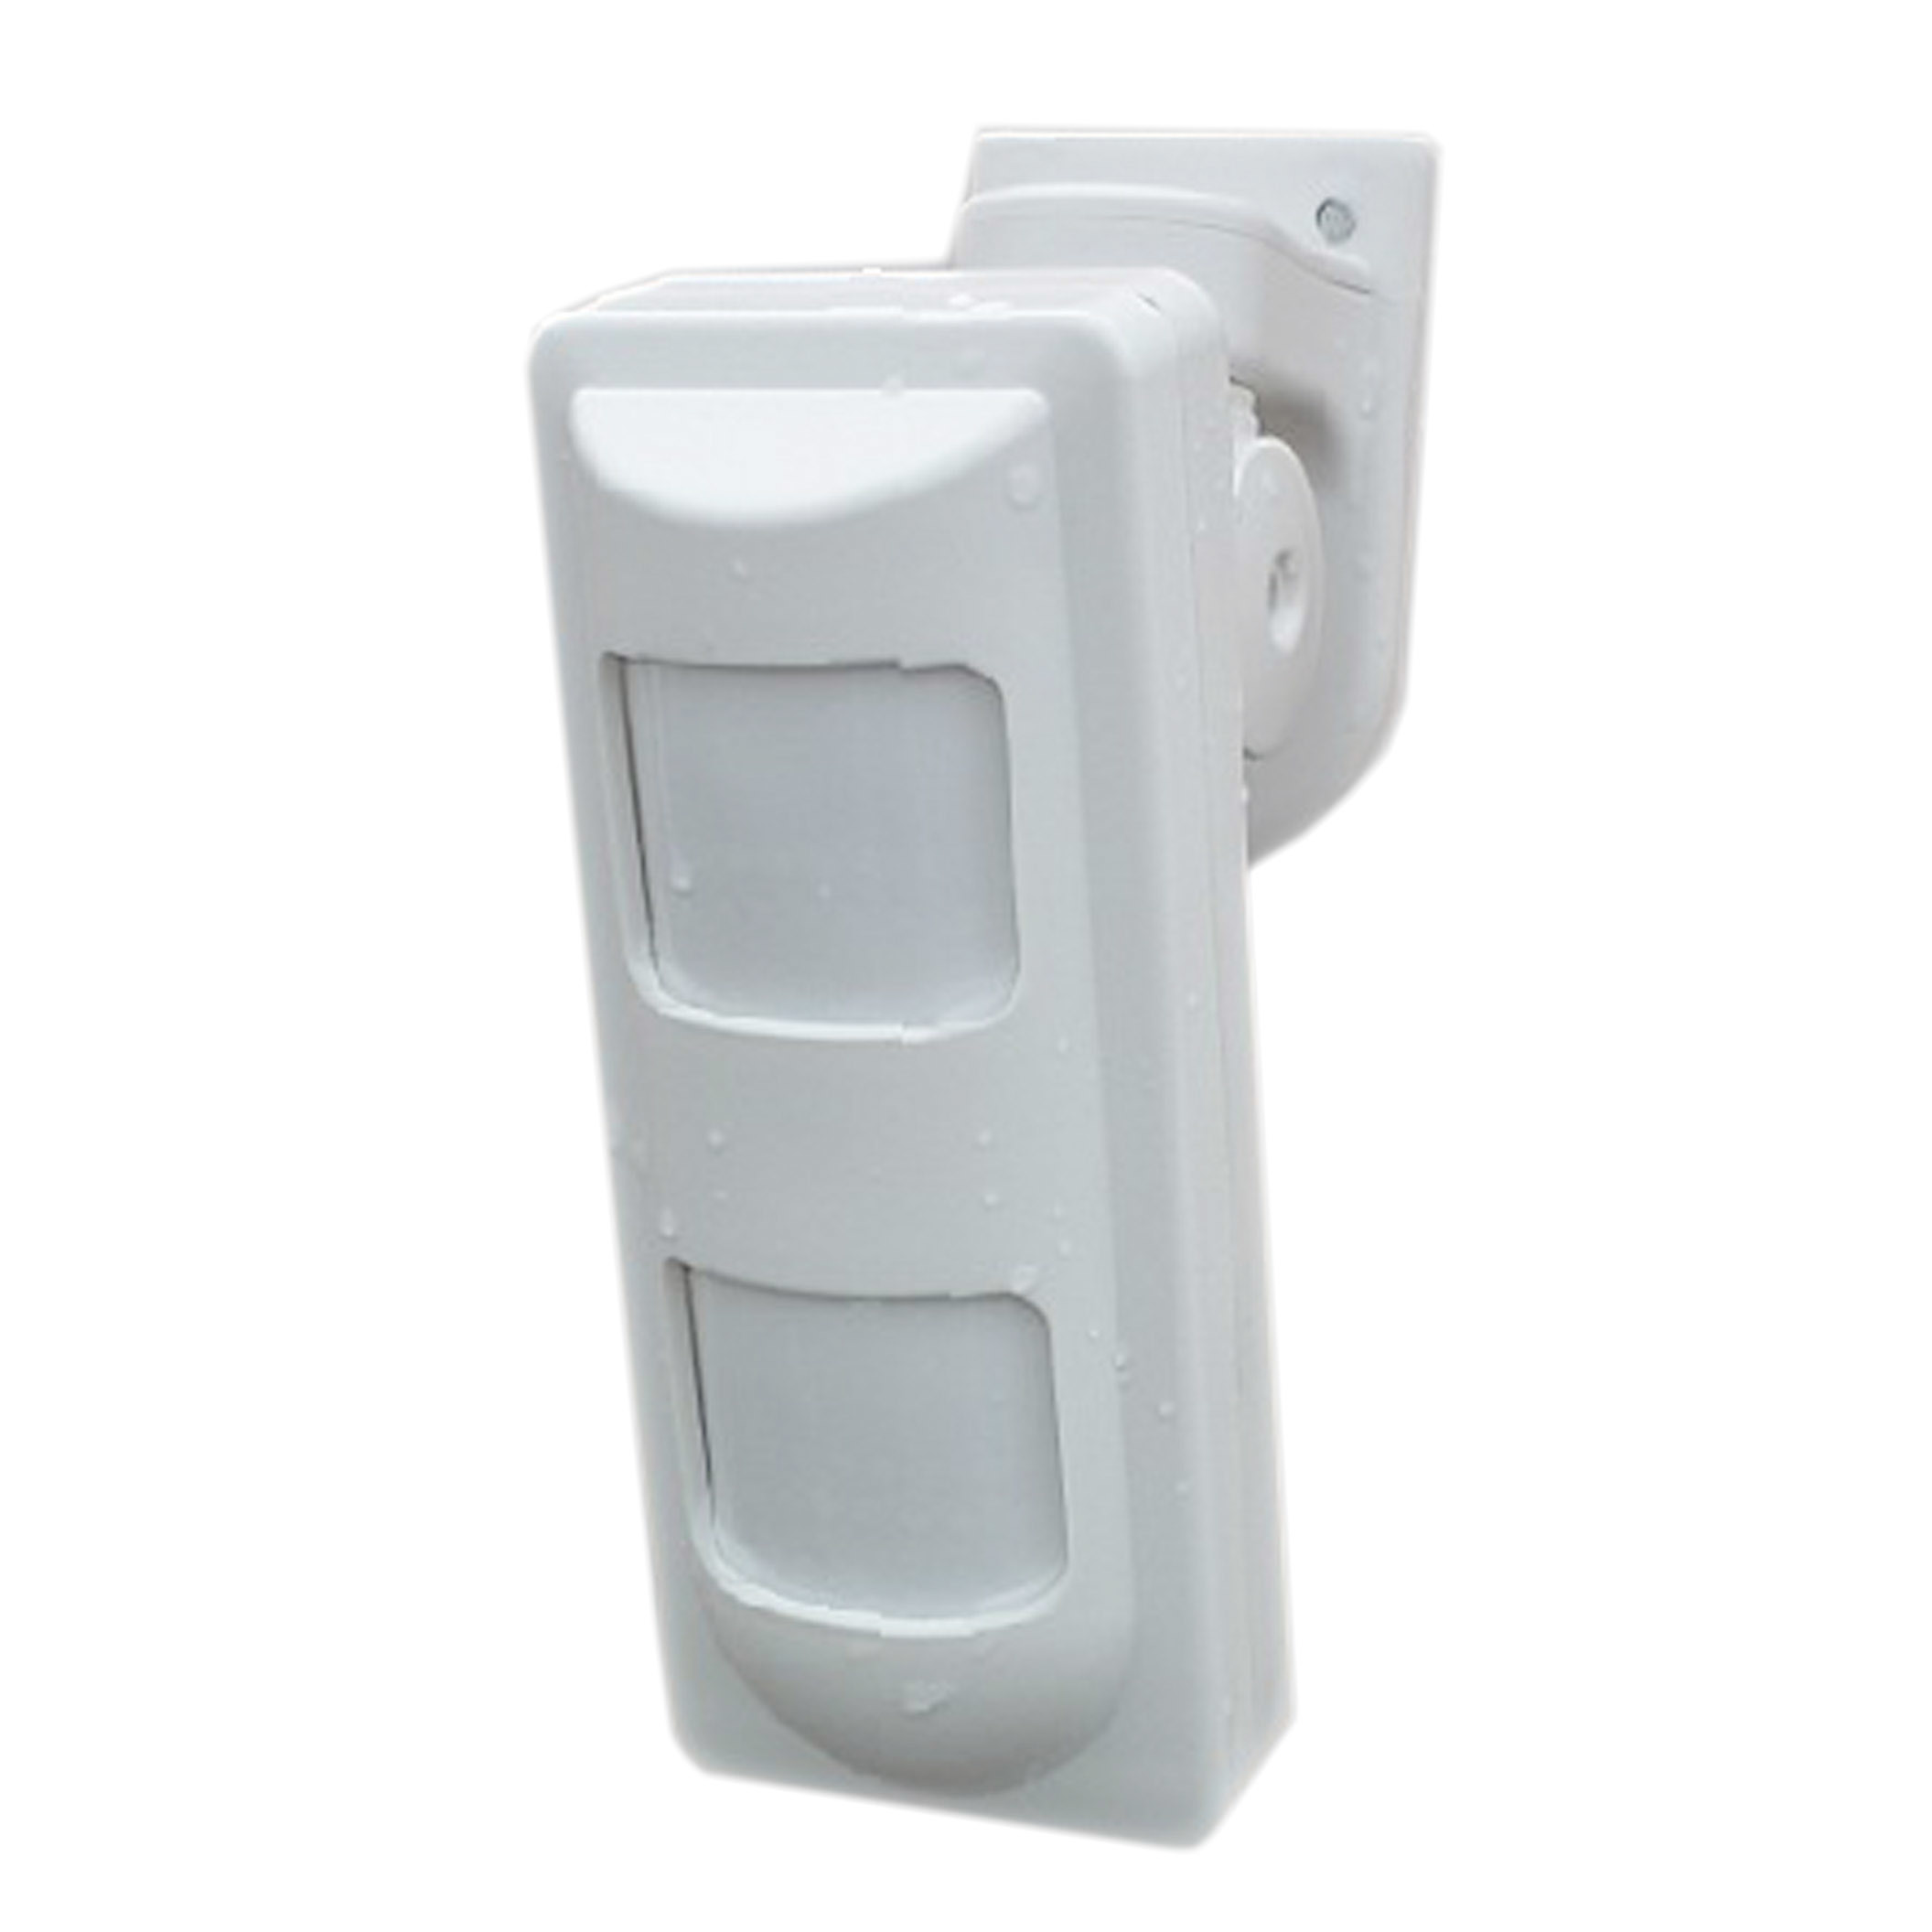 Intelligent 2 PIR and MW Outdoor Motion Detector Withpet Immunity, Curtain, Long Range for Option